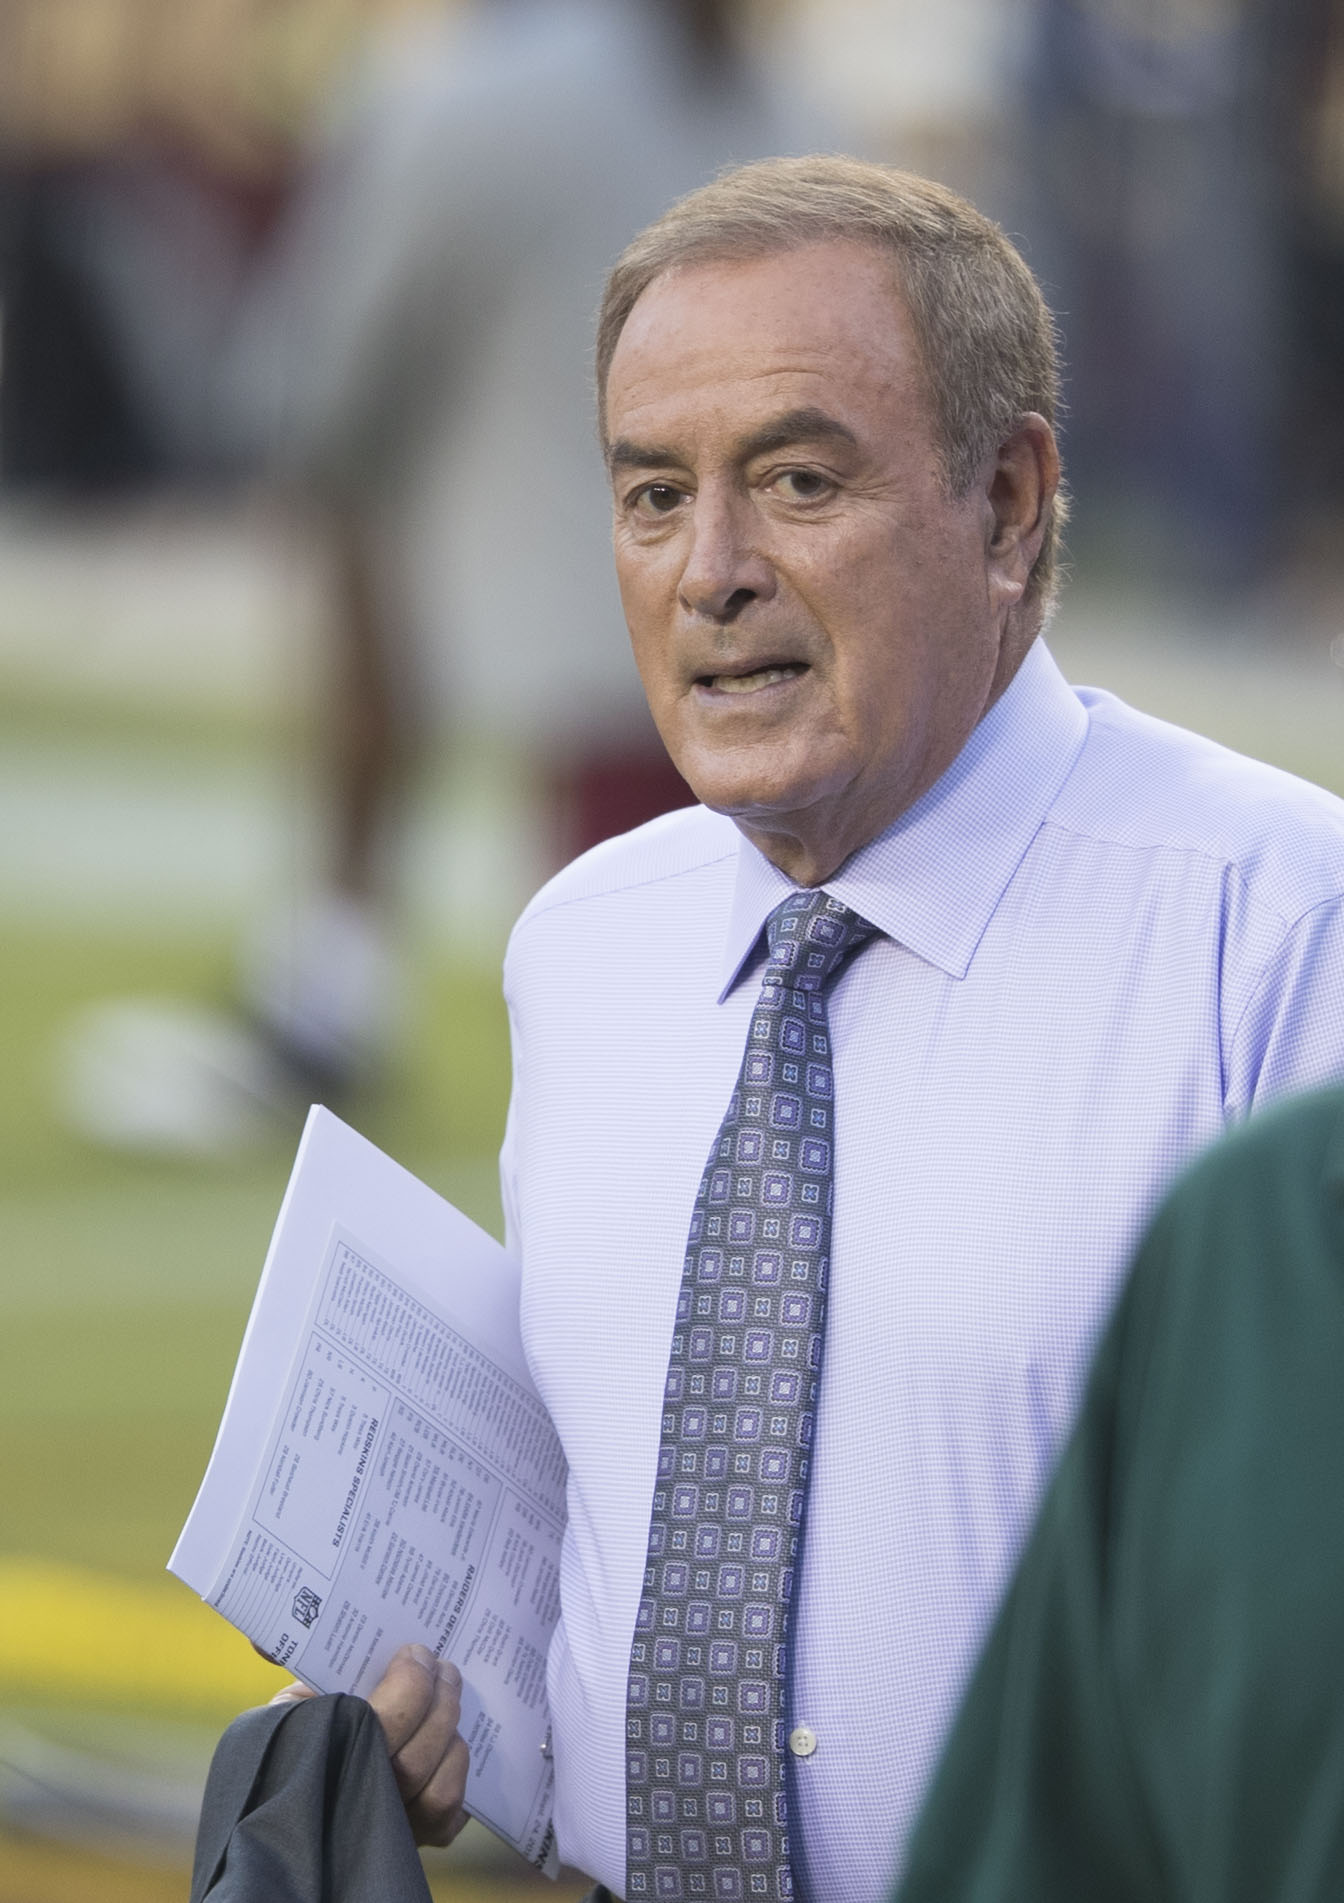 The 73-year old son of father James Michaels and mother Lila Michaels Al Michaels in 2018 photo. Al Michaels earned a  million dollar salary - leaving the net worth at 20 million in 2018